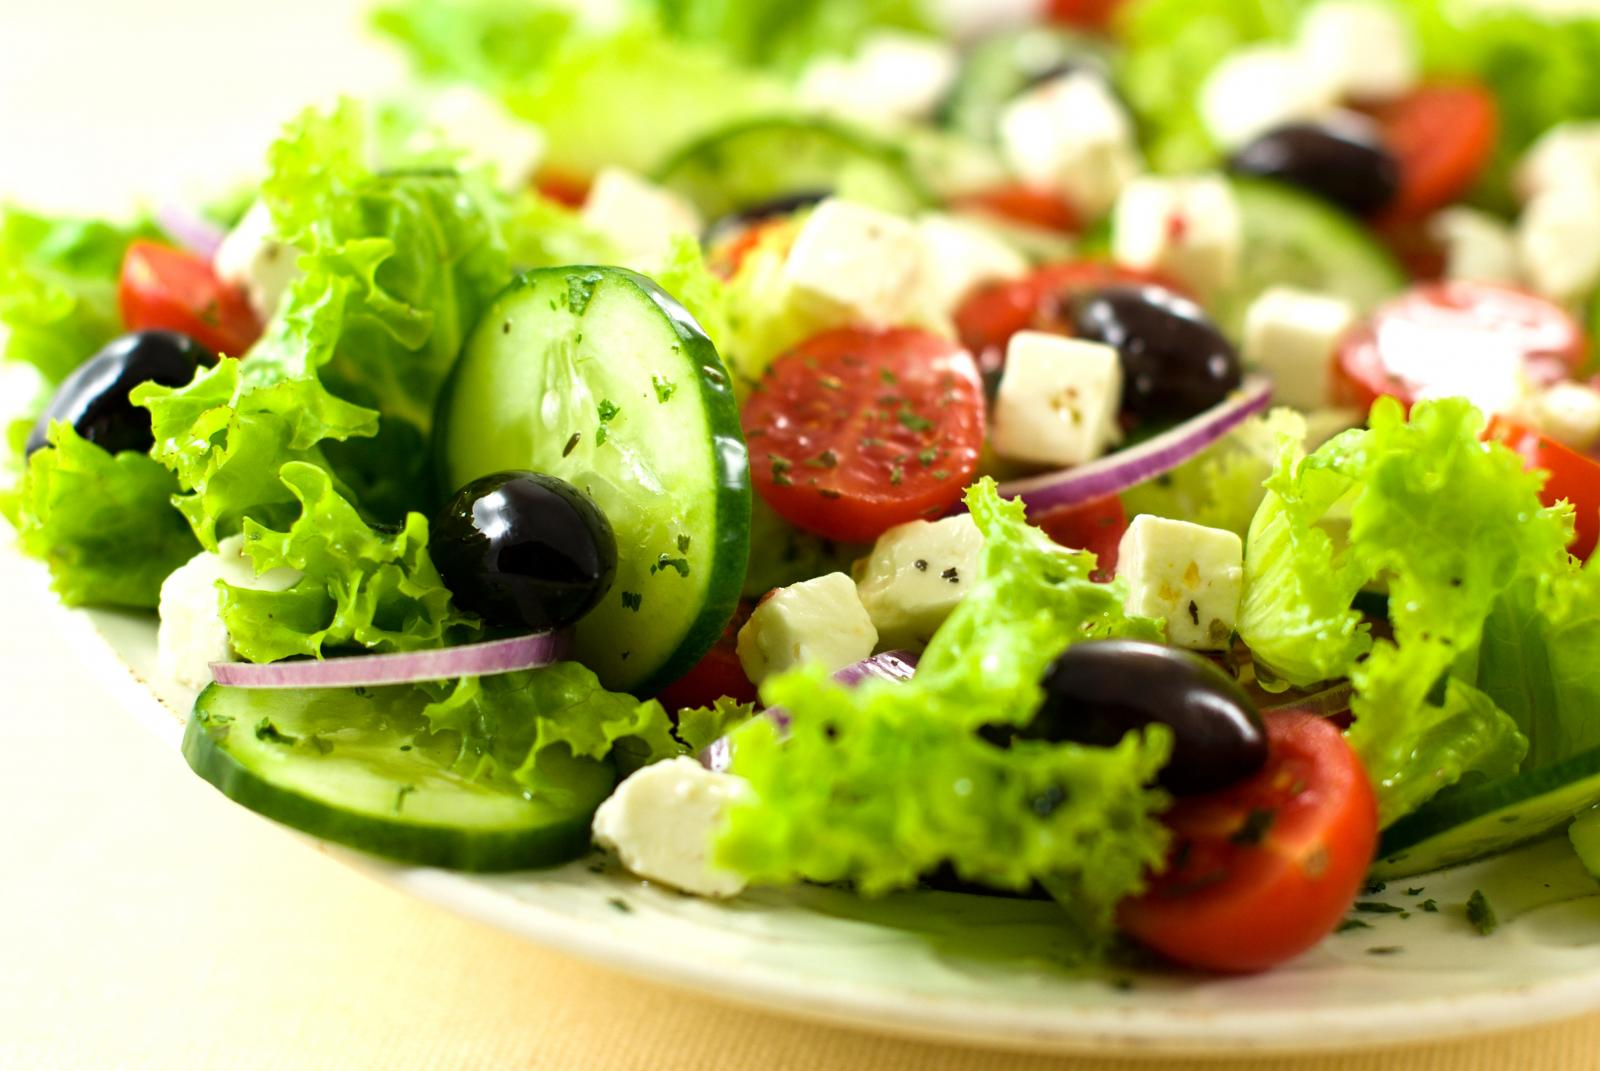 lettuce-cucumber-olives-onions-tomatoes-